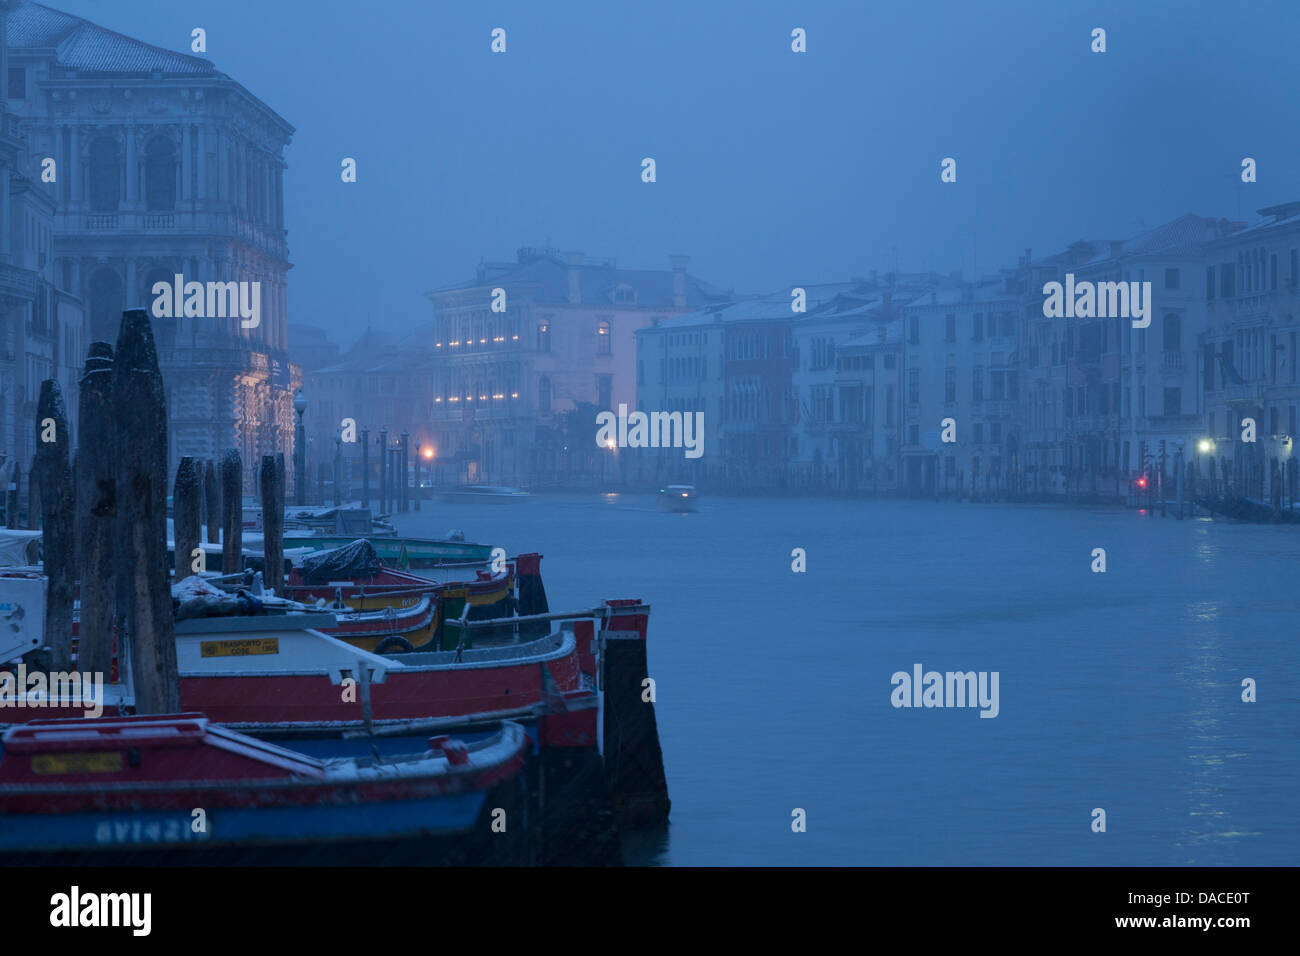 Heavy snowing, Canale Grande, Venice, Italy - Stock Image